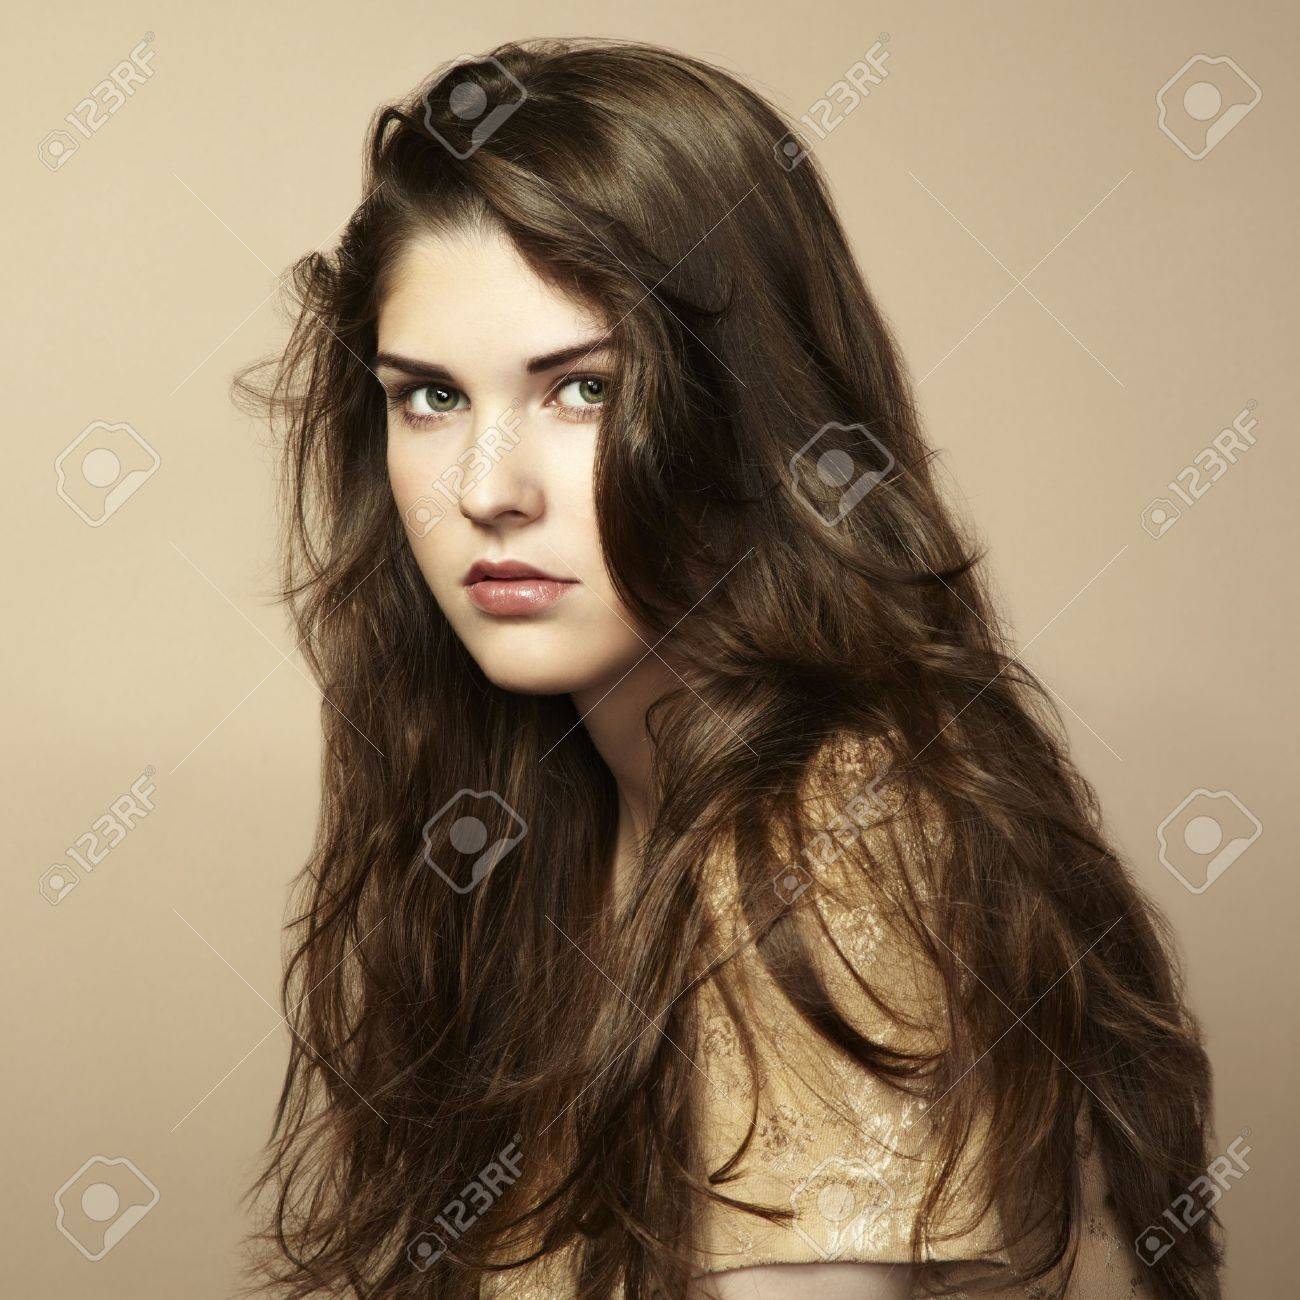 Fashion photo of beautiful woman with magnificent hair  Studio portrait Stock Photo - 14178535